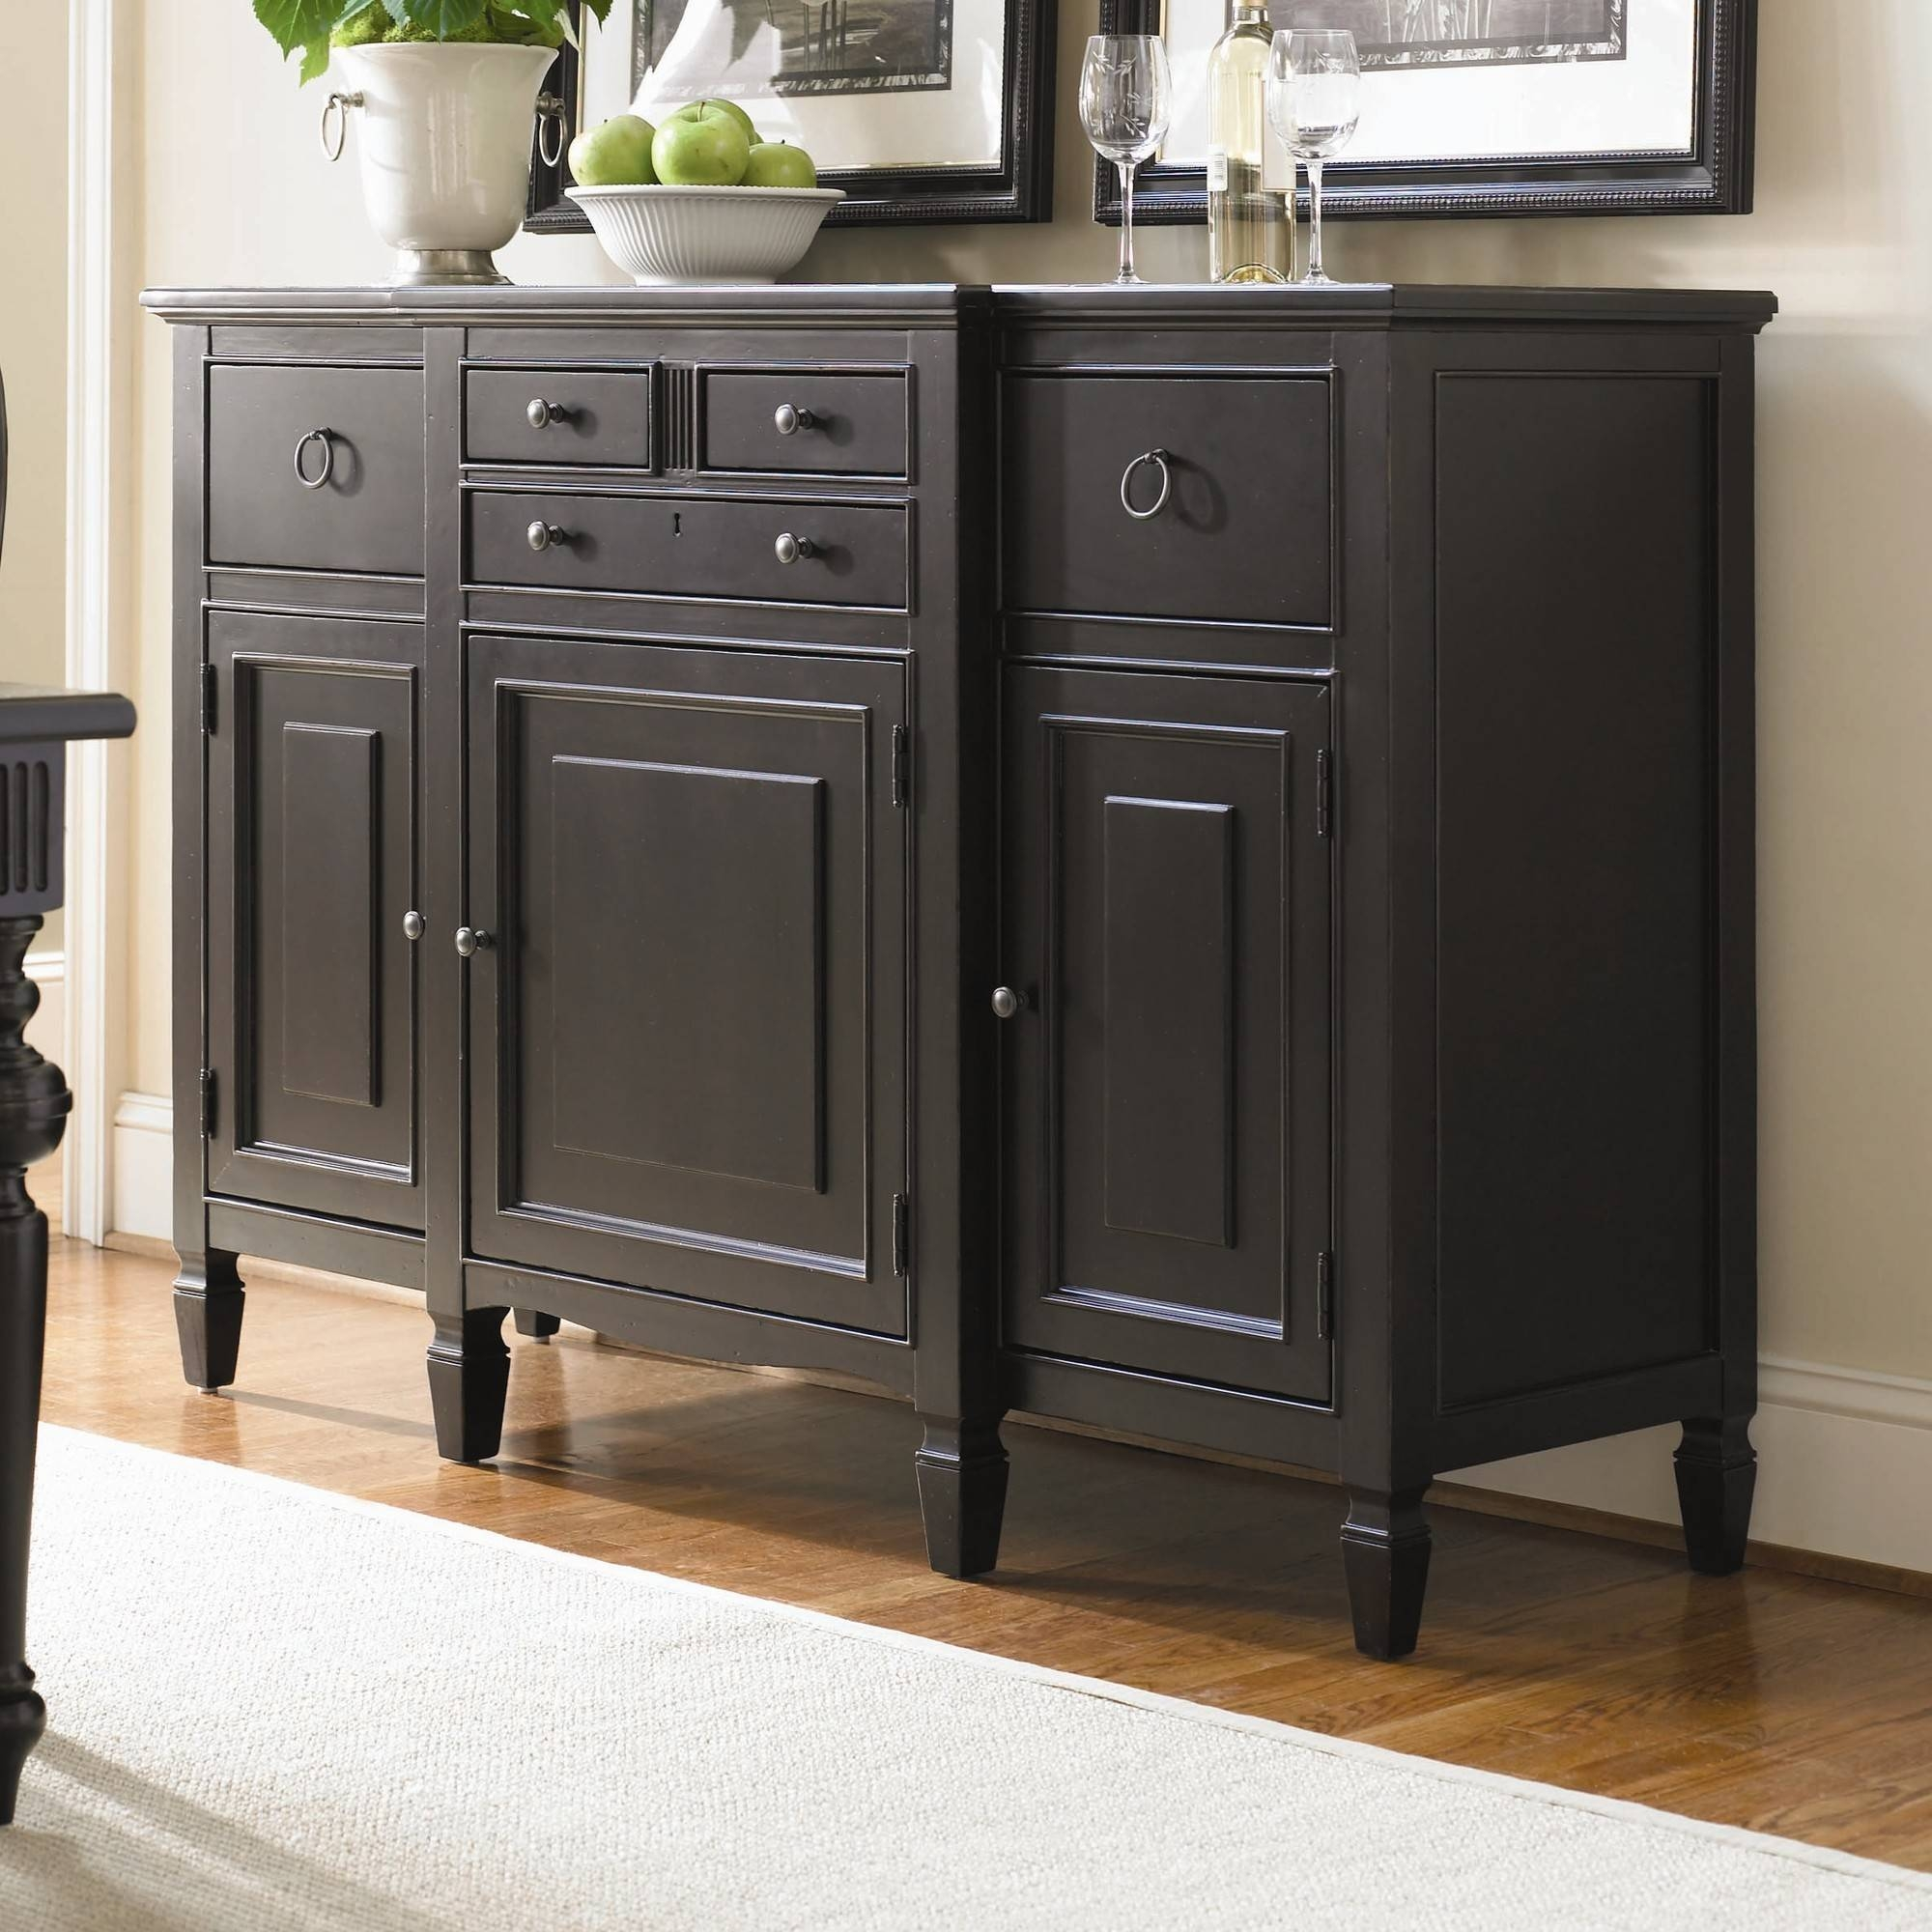 Kitchen : Buffet Server Table Buffet Server Furniture Rustic Within Grey Wood Sideboards (#6 of 15)